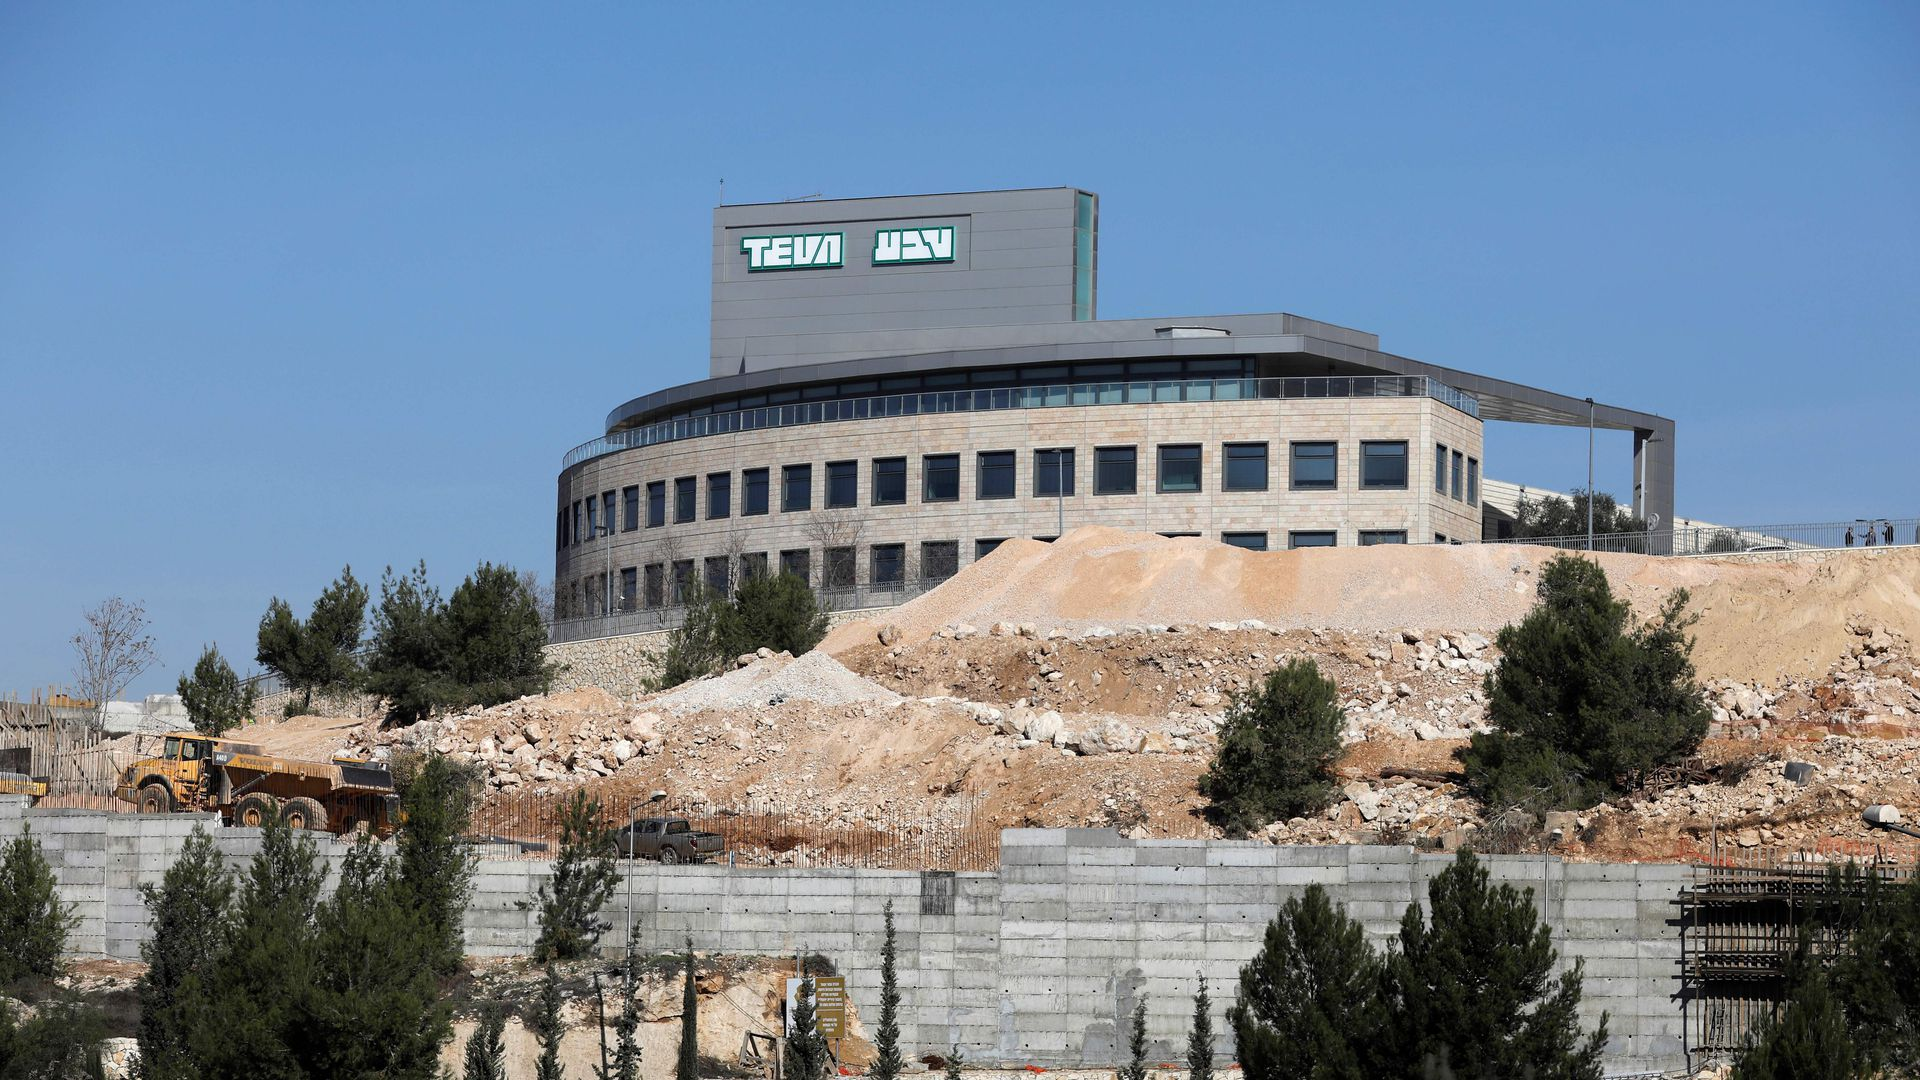 A Teva drug manufacturing plant in Israel.